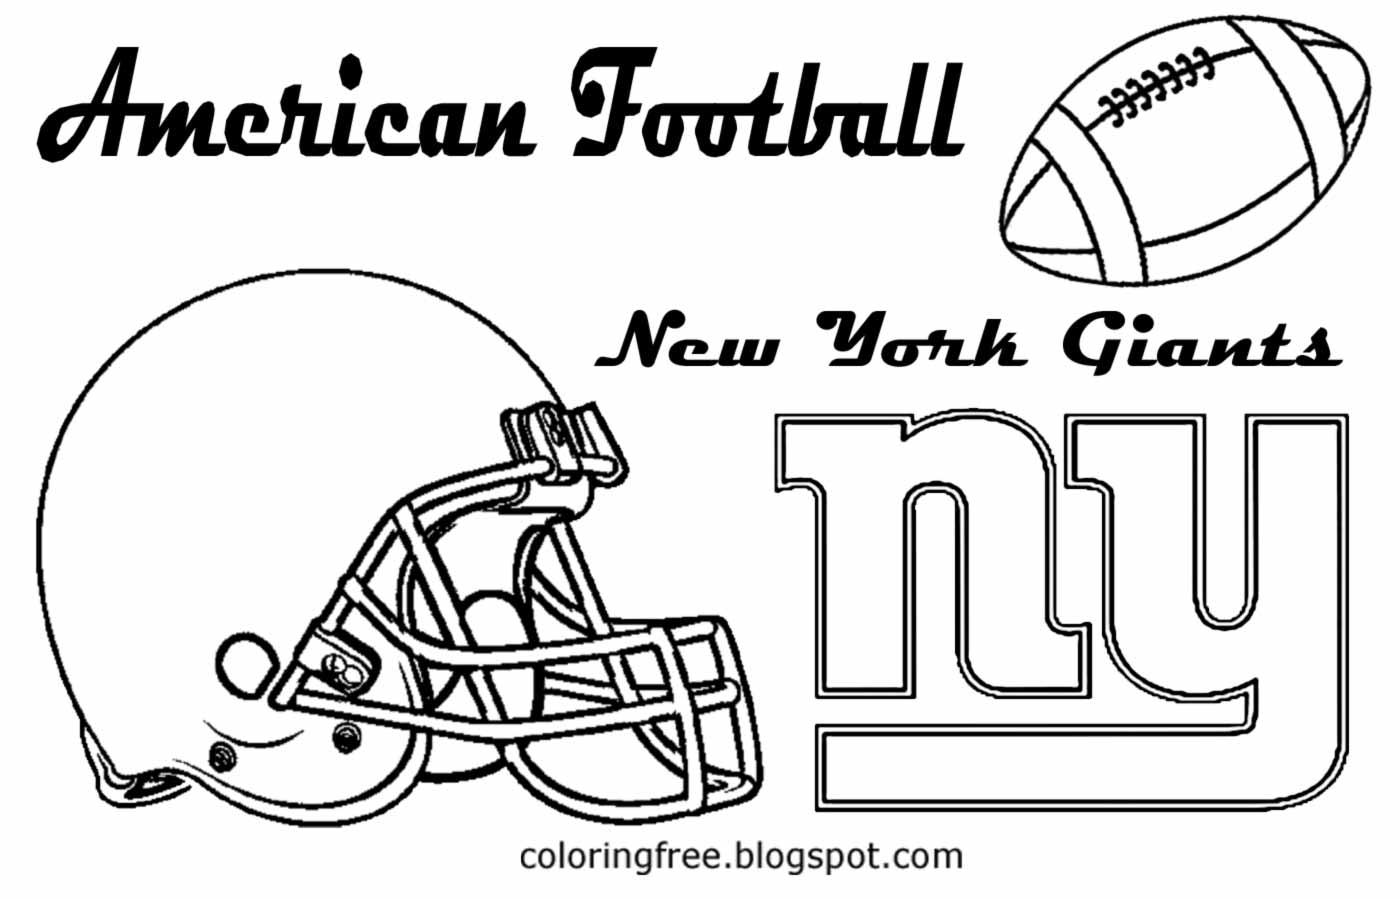 ny giants coloring pages - photo#14